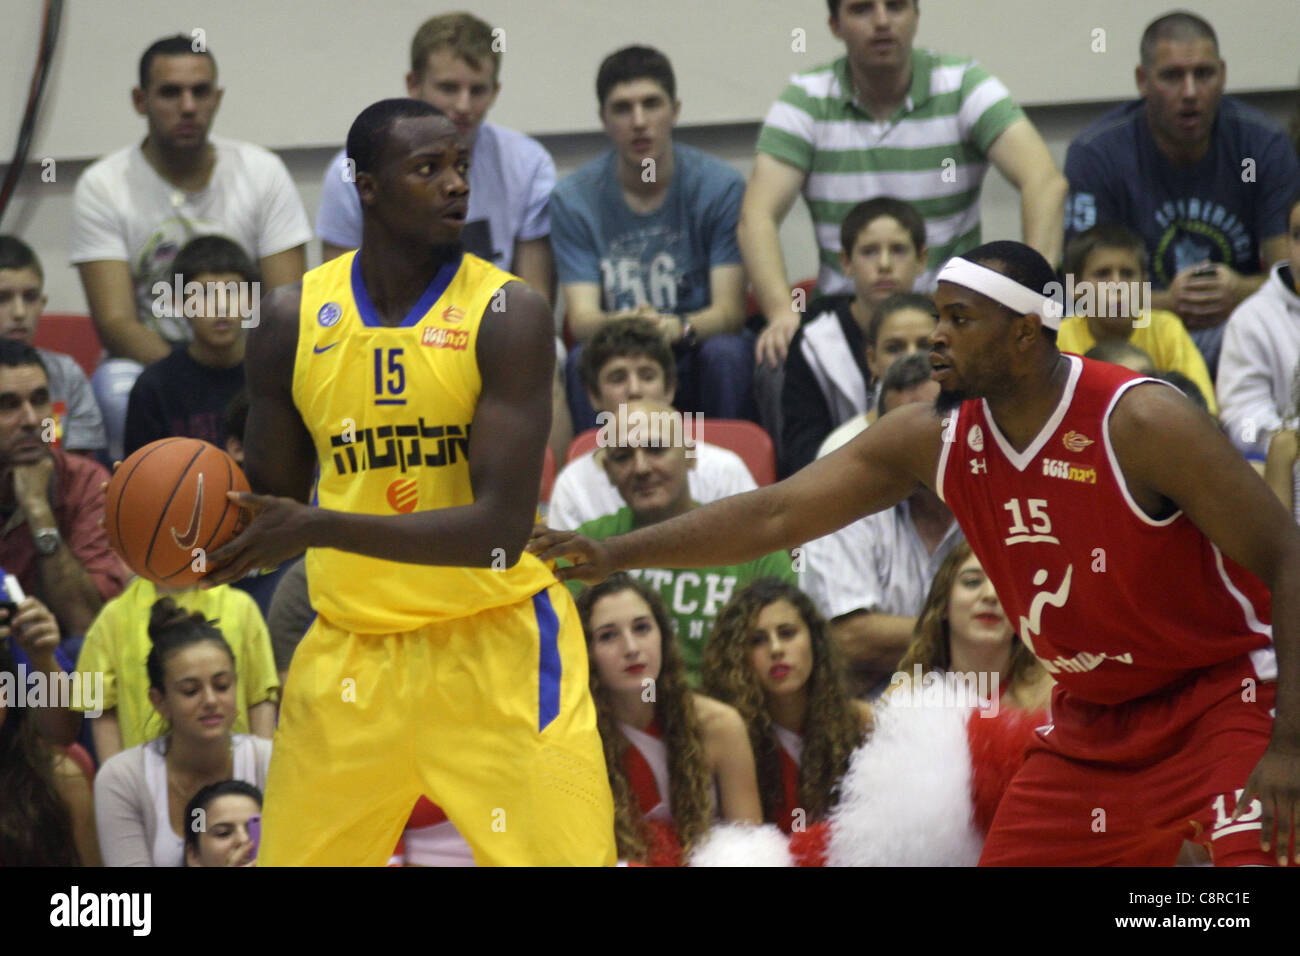 Maccabi Tel Aviv Basketball team (Yellow) Playing Hapoel Gilboa-Galil (Red) on October 16th 2011. - Stock Image